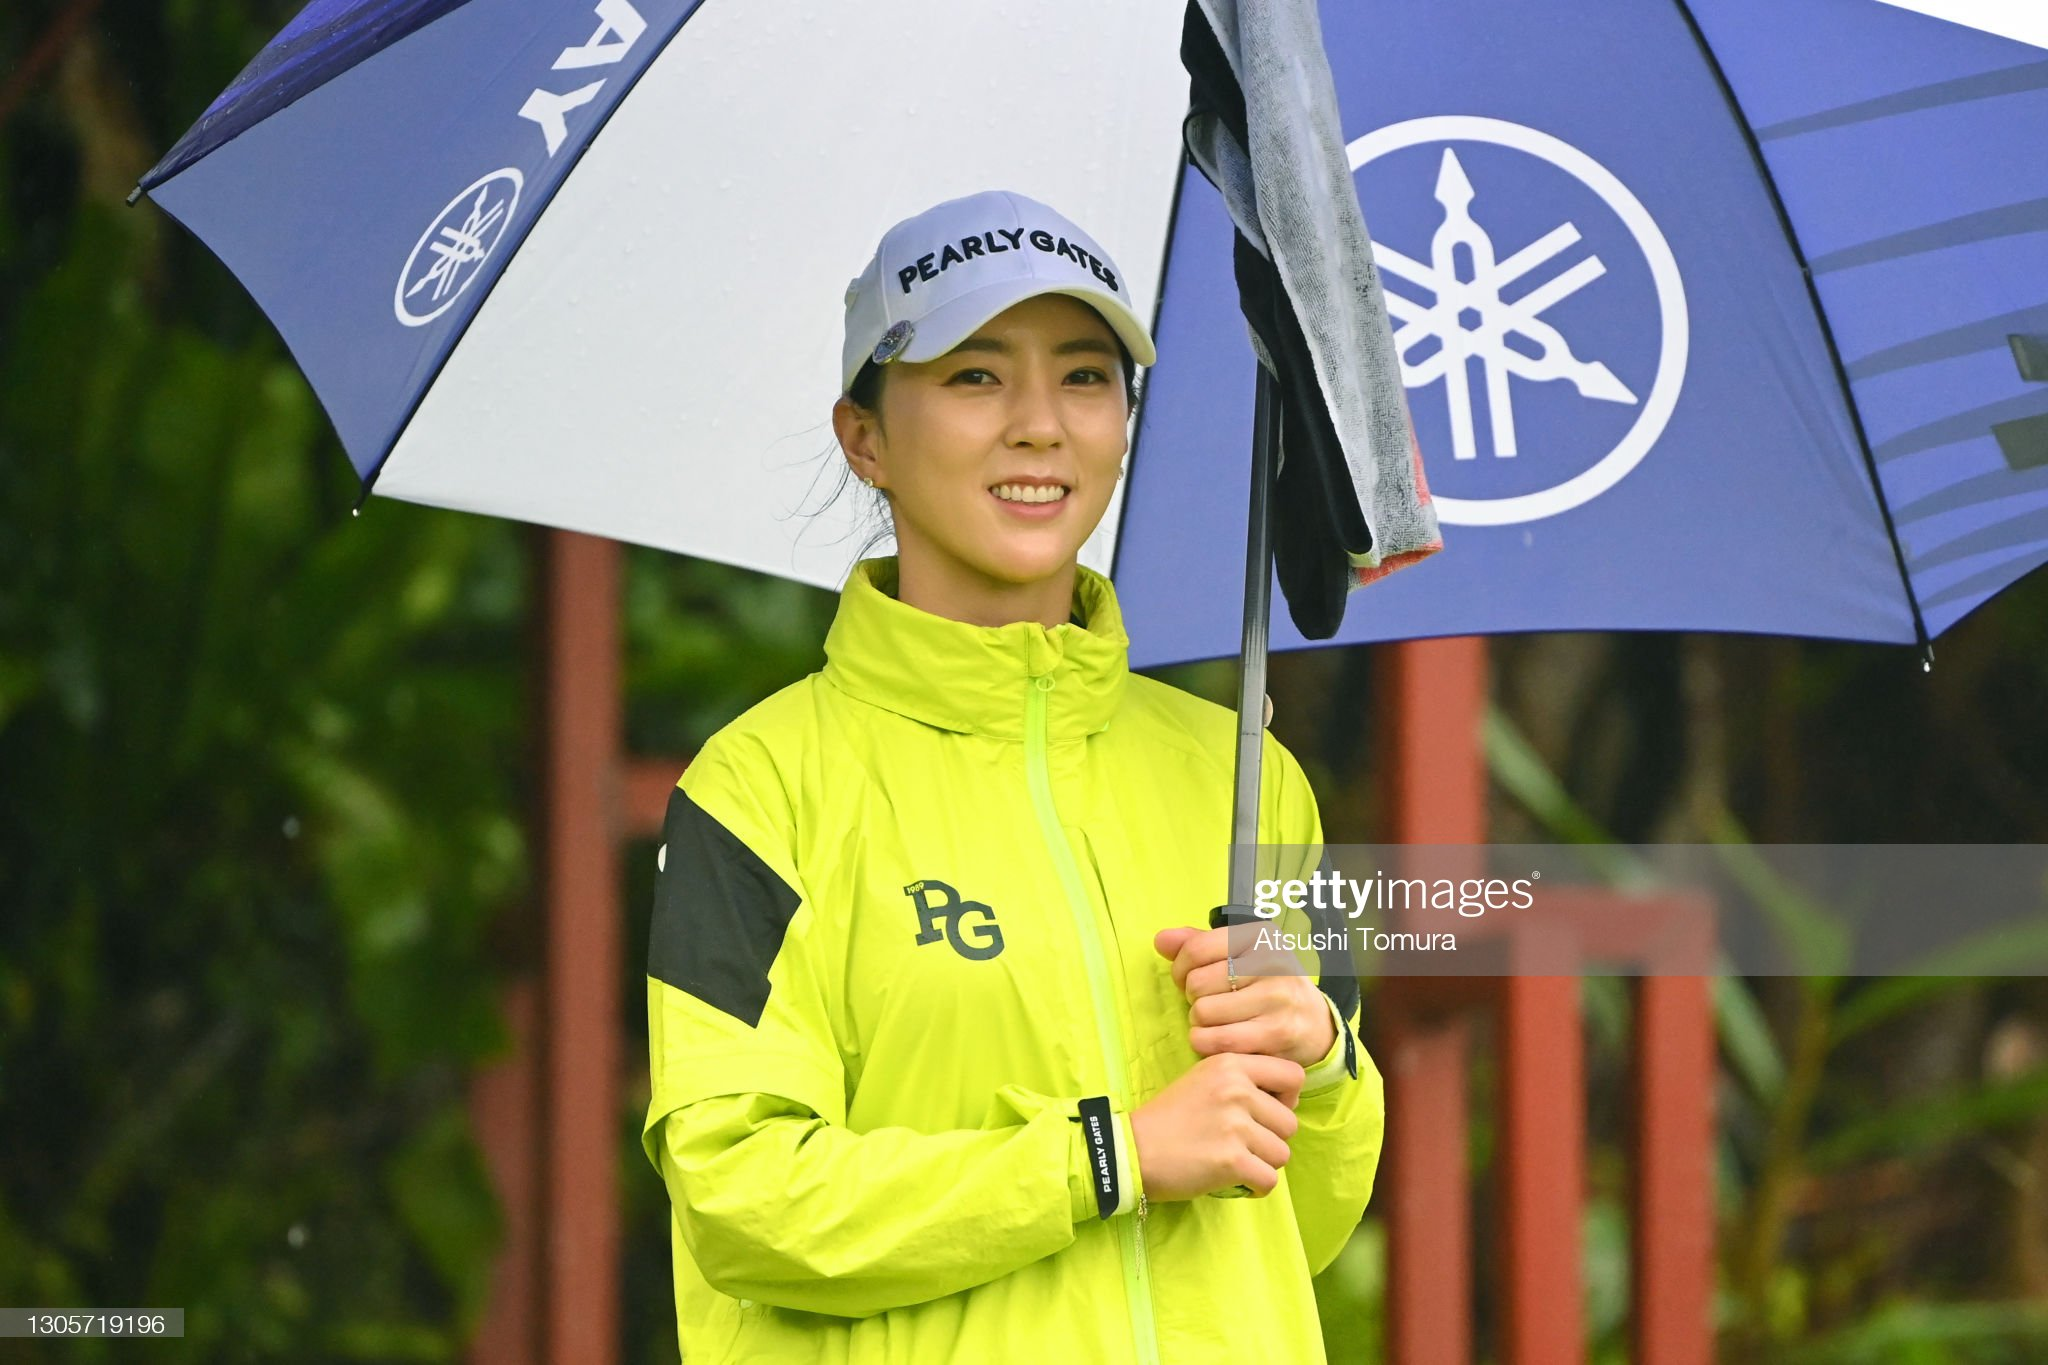 https://media.gettyimages.com/photos/chaeyoung-yoon-of-south-korea-smiles-on-the-11th-tee-during-the-final-picture-id1305719196?s=2048x2048